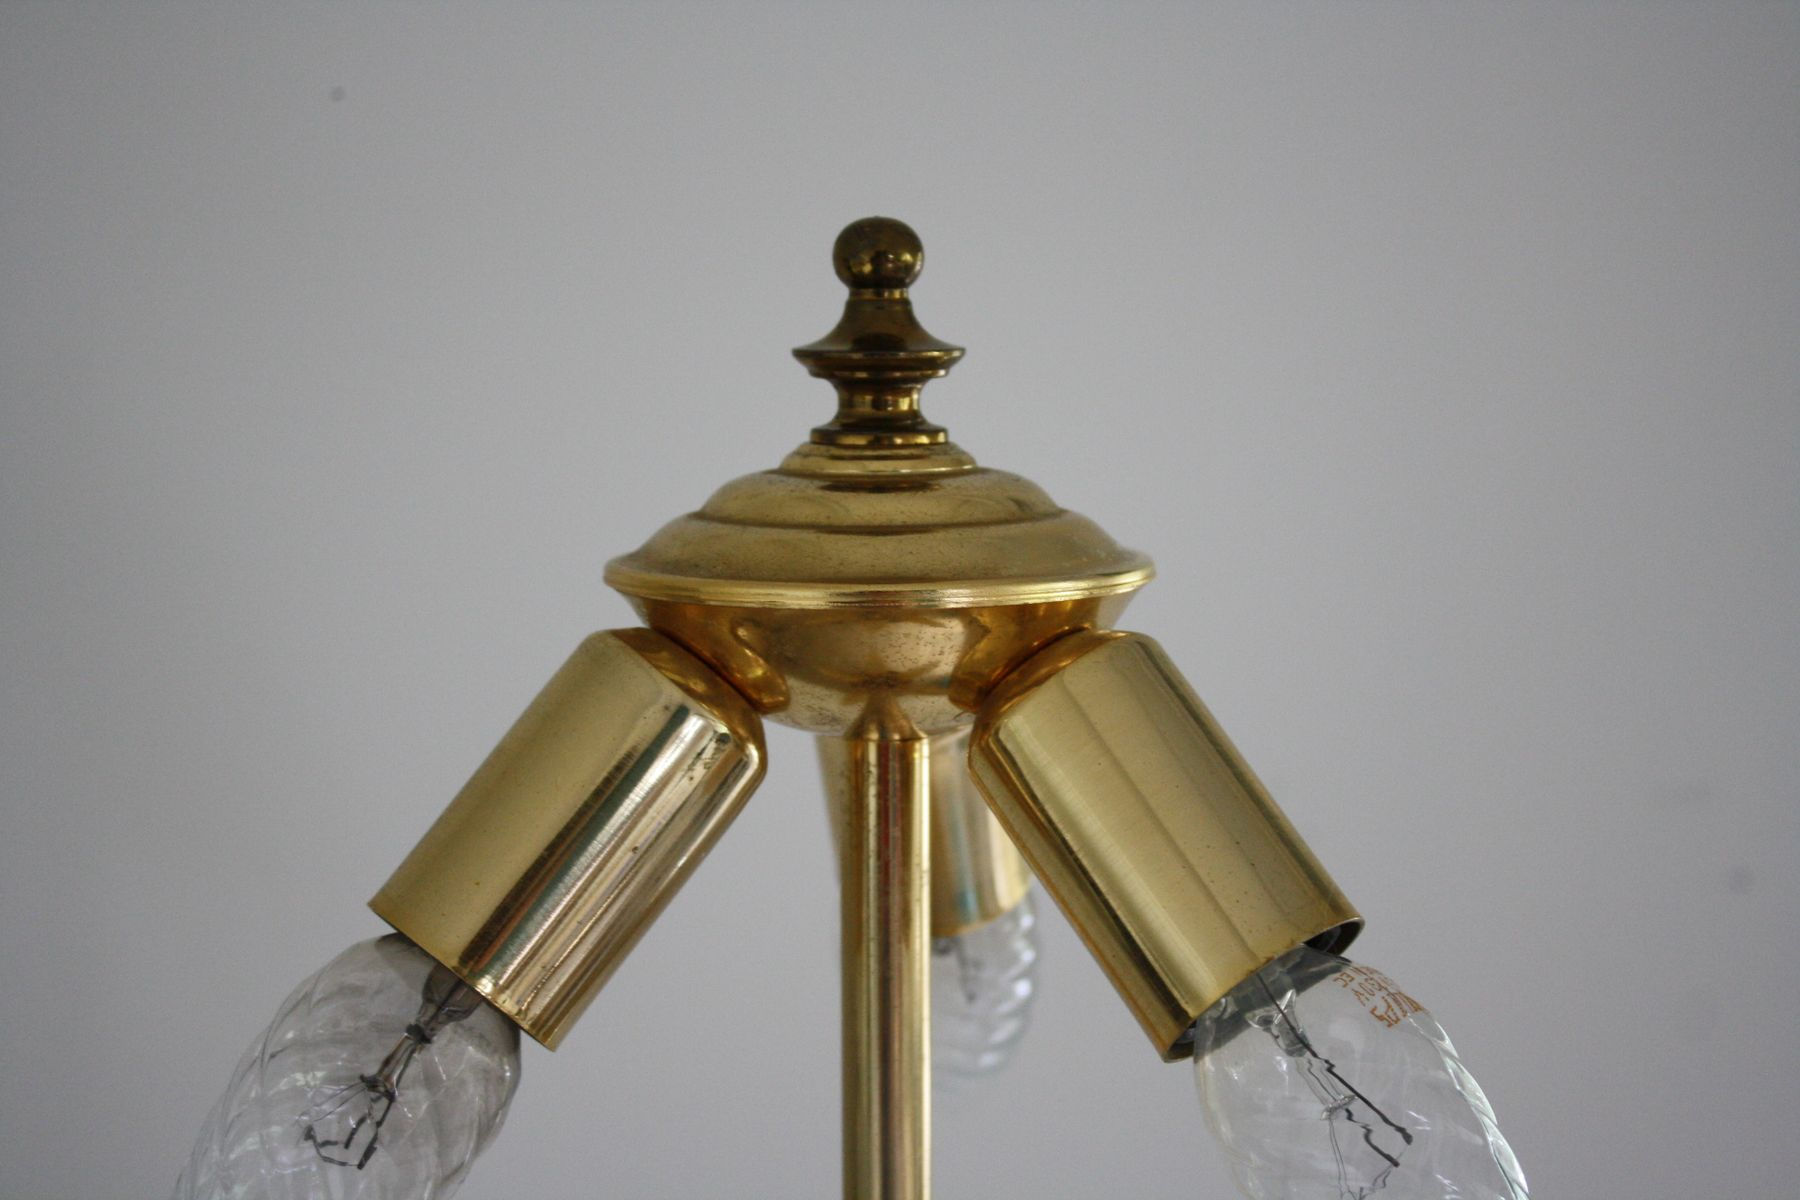 Brass Floor Lamp, 1970s for sale at Pamono